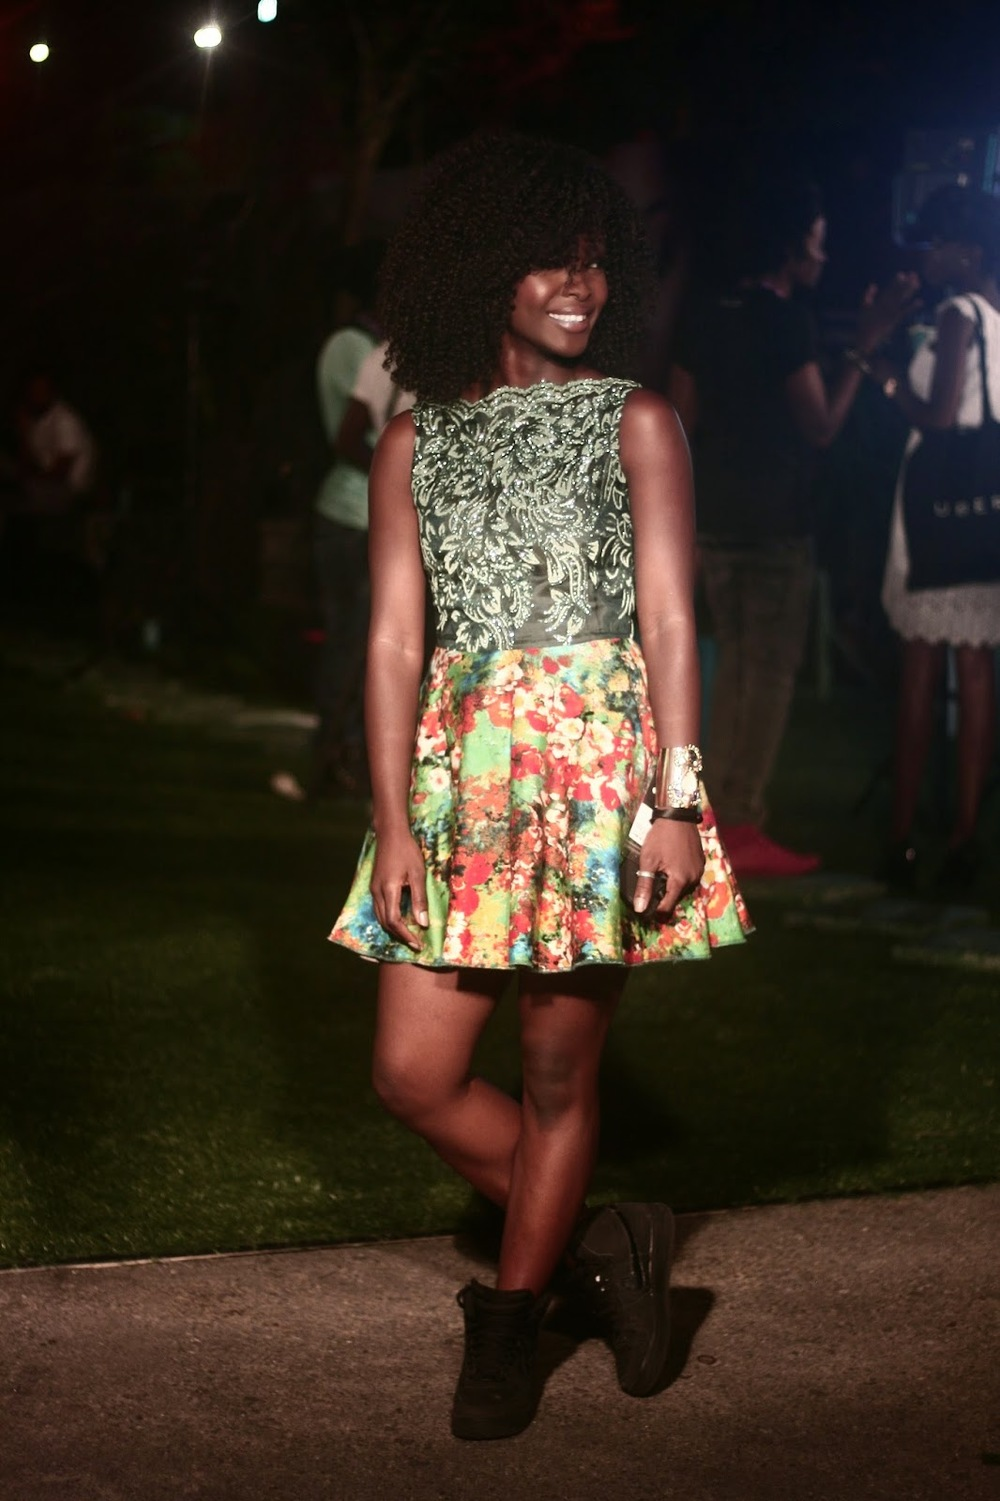 Running around behind the Scenes for  Ndani Tv at GTBLFDW2014 dressed in  Ayo Van Elmar   with Make-up by Lois Isen for  Pro Spotted Make Over   This is one of my favourite Photos of day 1 taken by  Afam